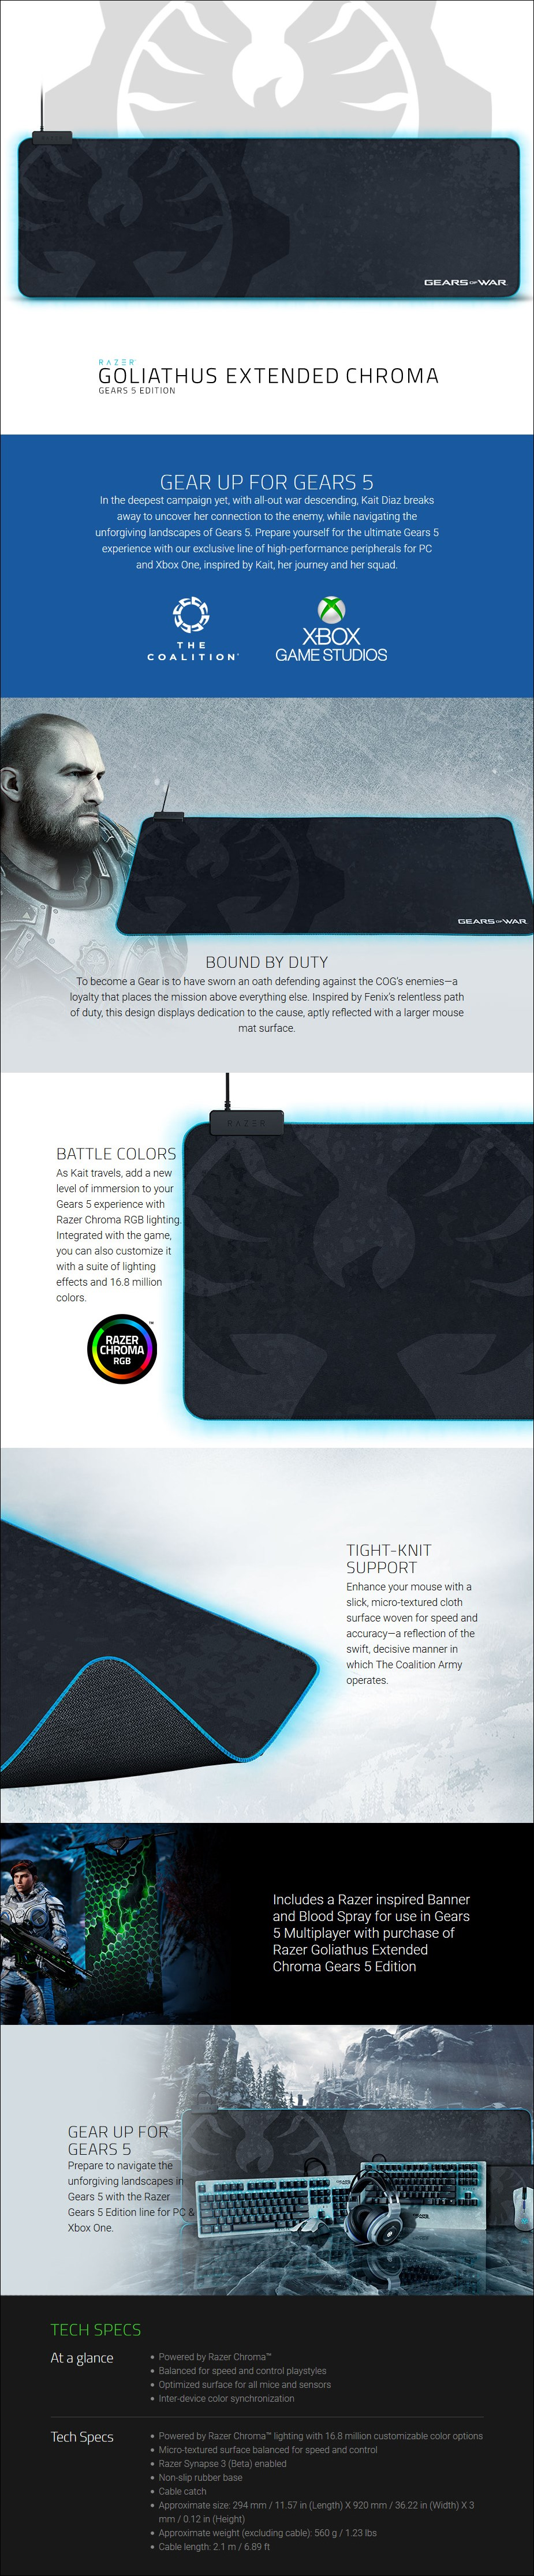 Razer Goliathus Chroma Soft Extended Gaming Mouse Pad - Gears 5 Edition - Overview 1